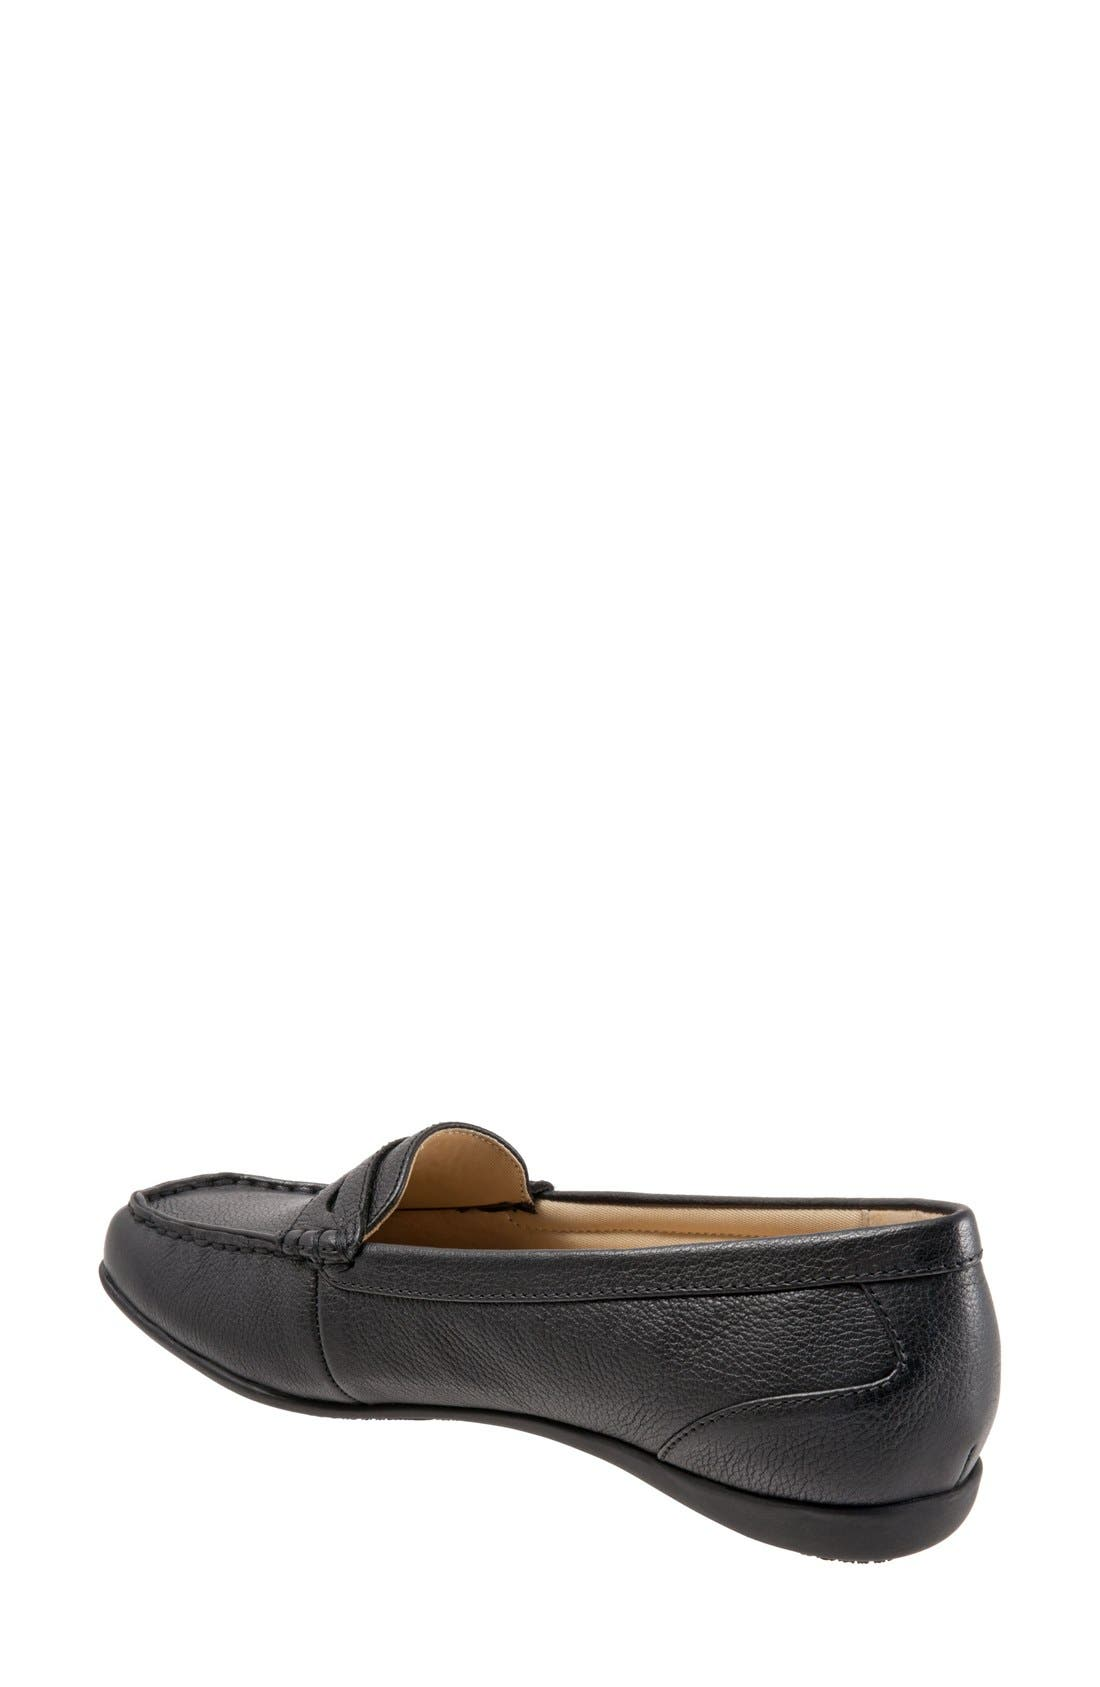 'Staci' Penny Loafer,                             Alternate thumbnail 2, color,                             BLACK LEATHER